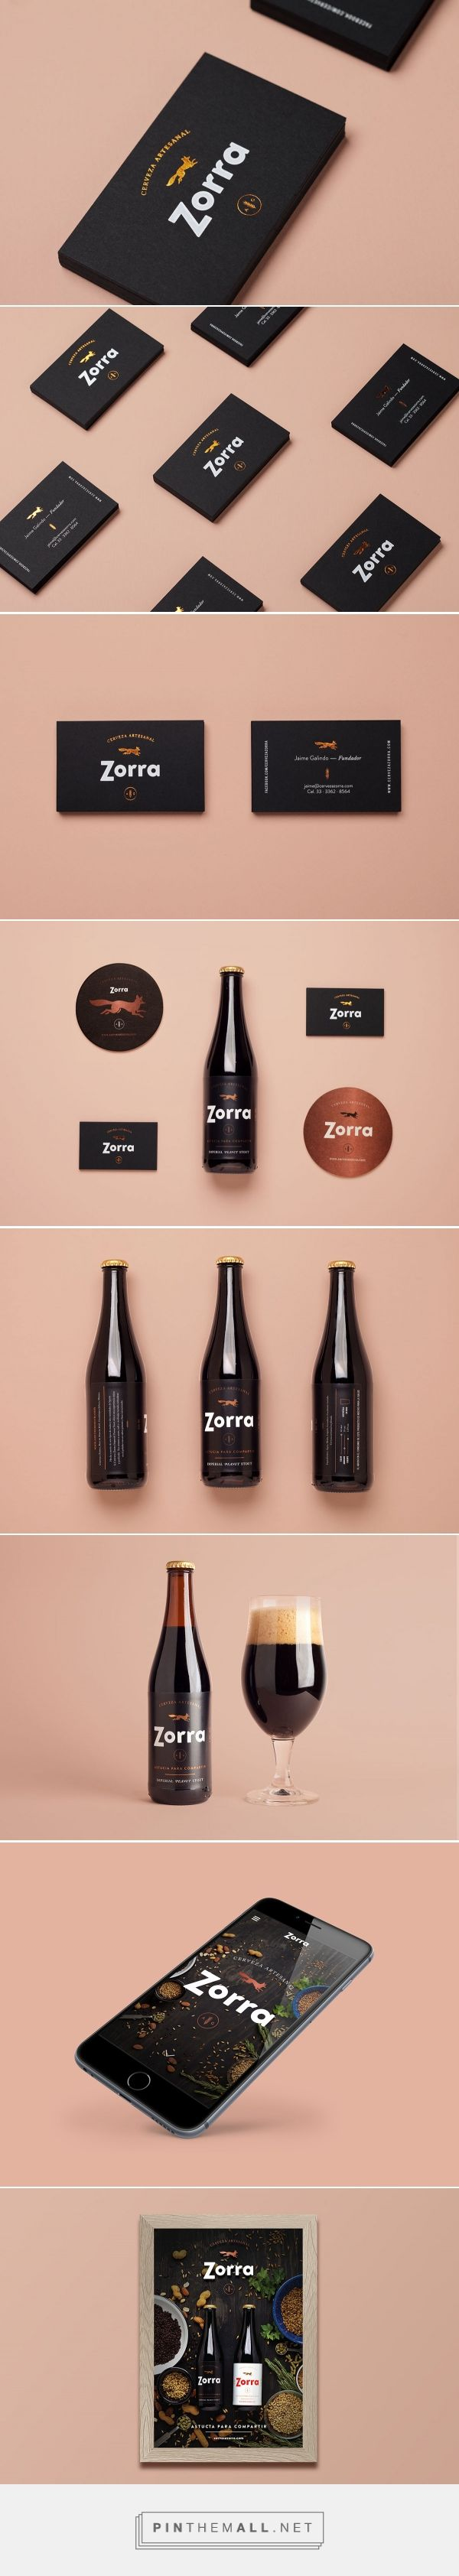 Zorra Beer Branding and Packaging by Analogo | Fivestar Branding Agency – Design and Branding Agency & Curated Inspiration Gallery